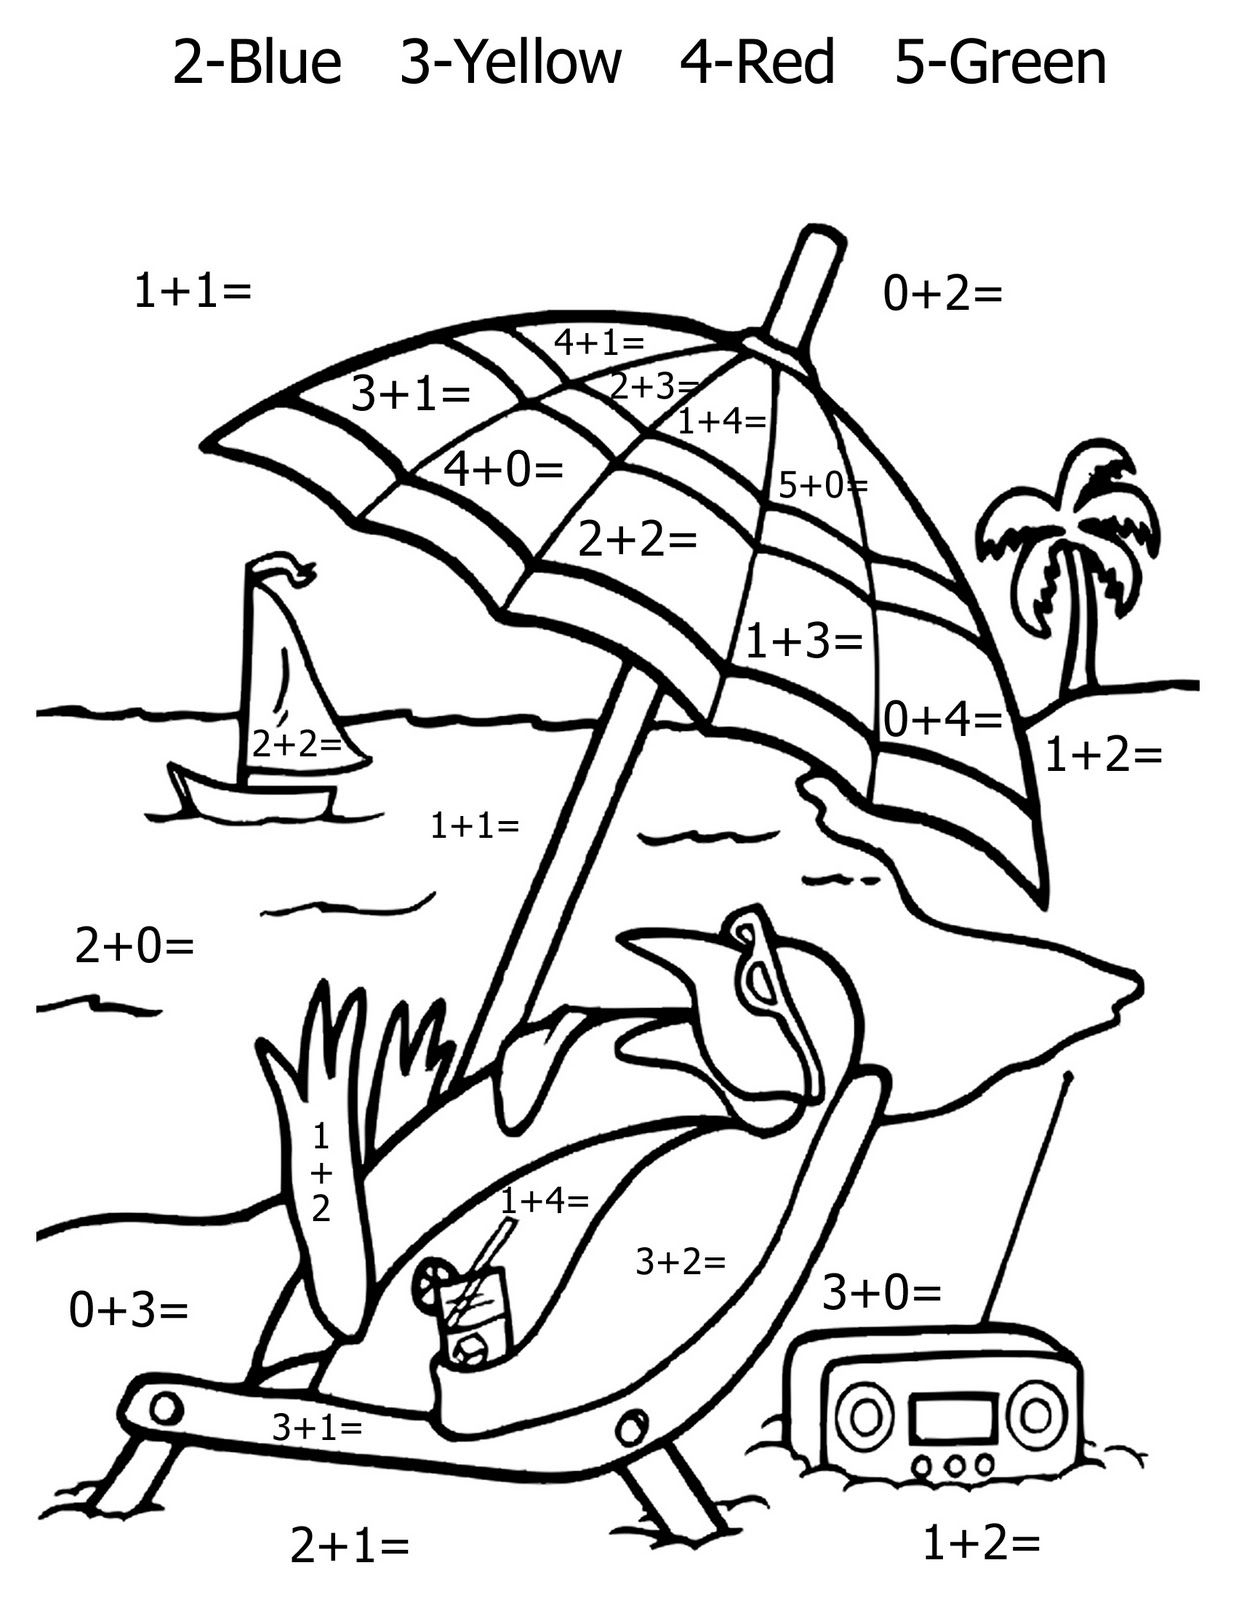 Free Printable Math Coloring Pages For Kids   Kinder Math - Free Printable Math Coloring Sheets